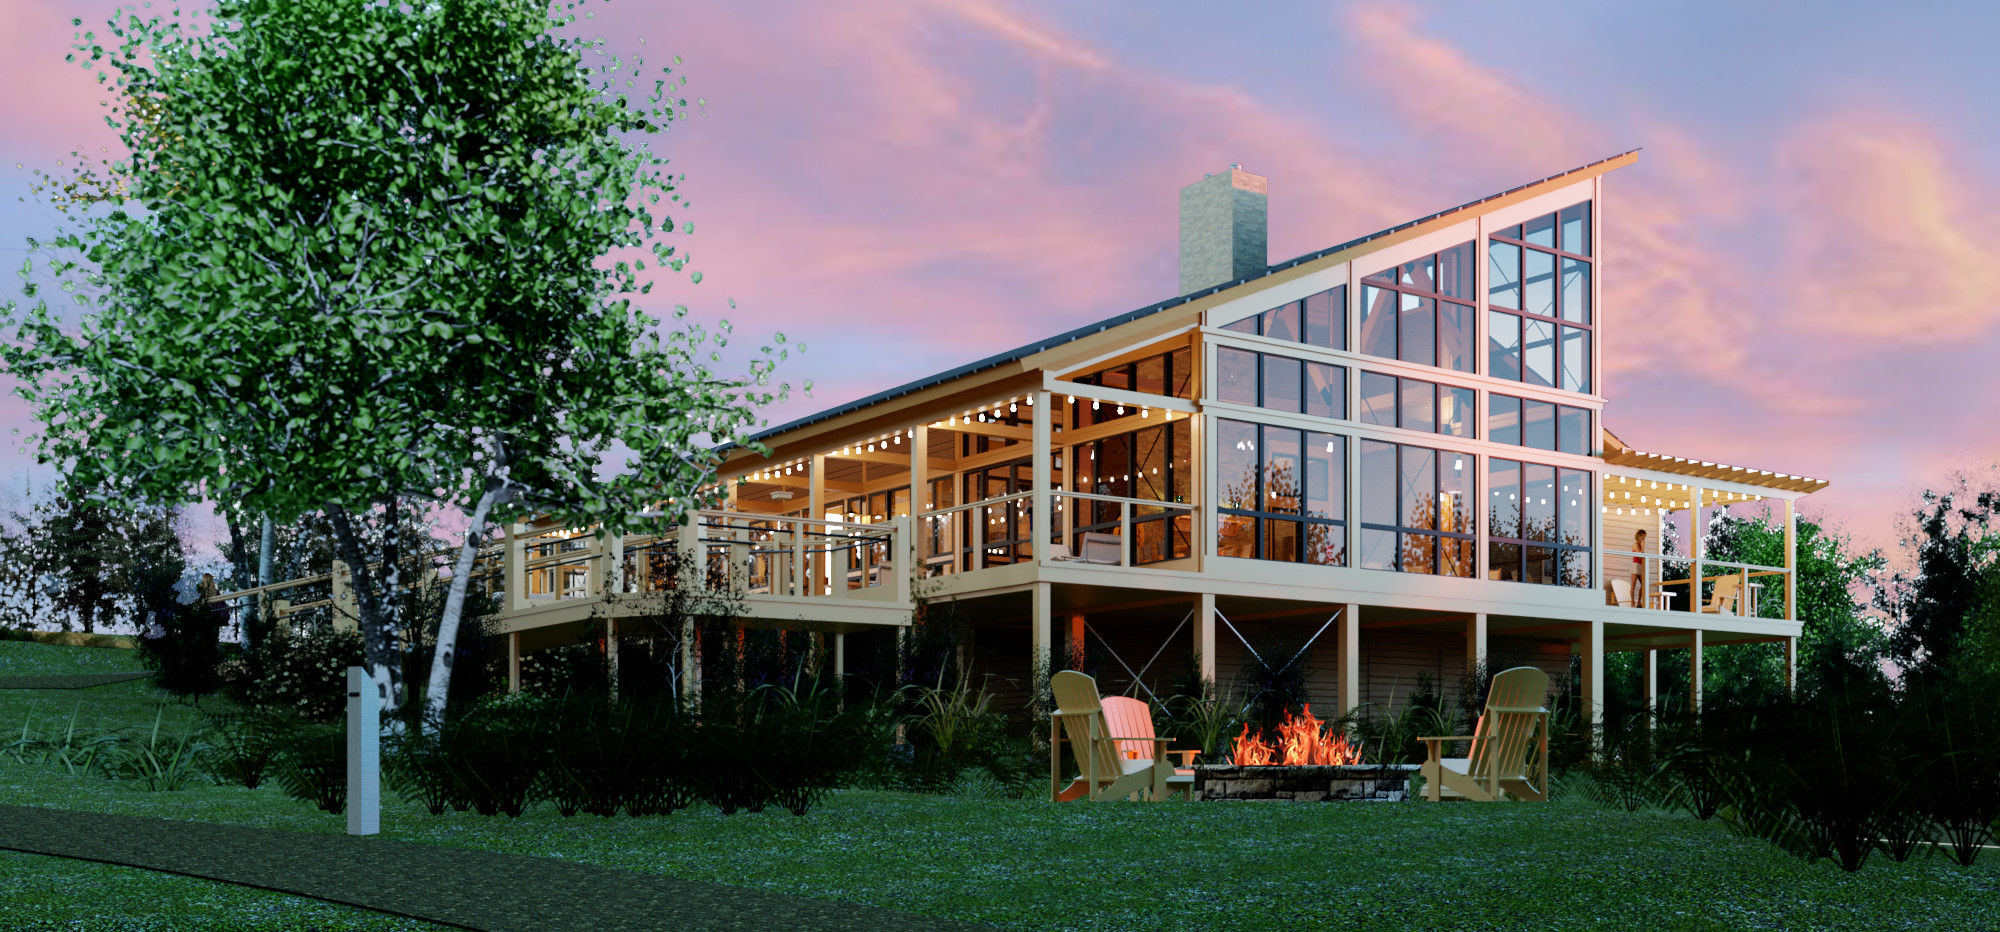 Luxury resort previews a much glampier future for KOA camping